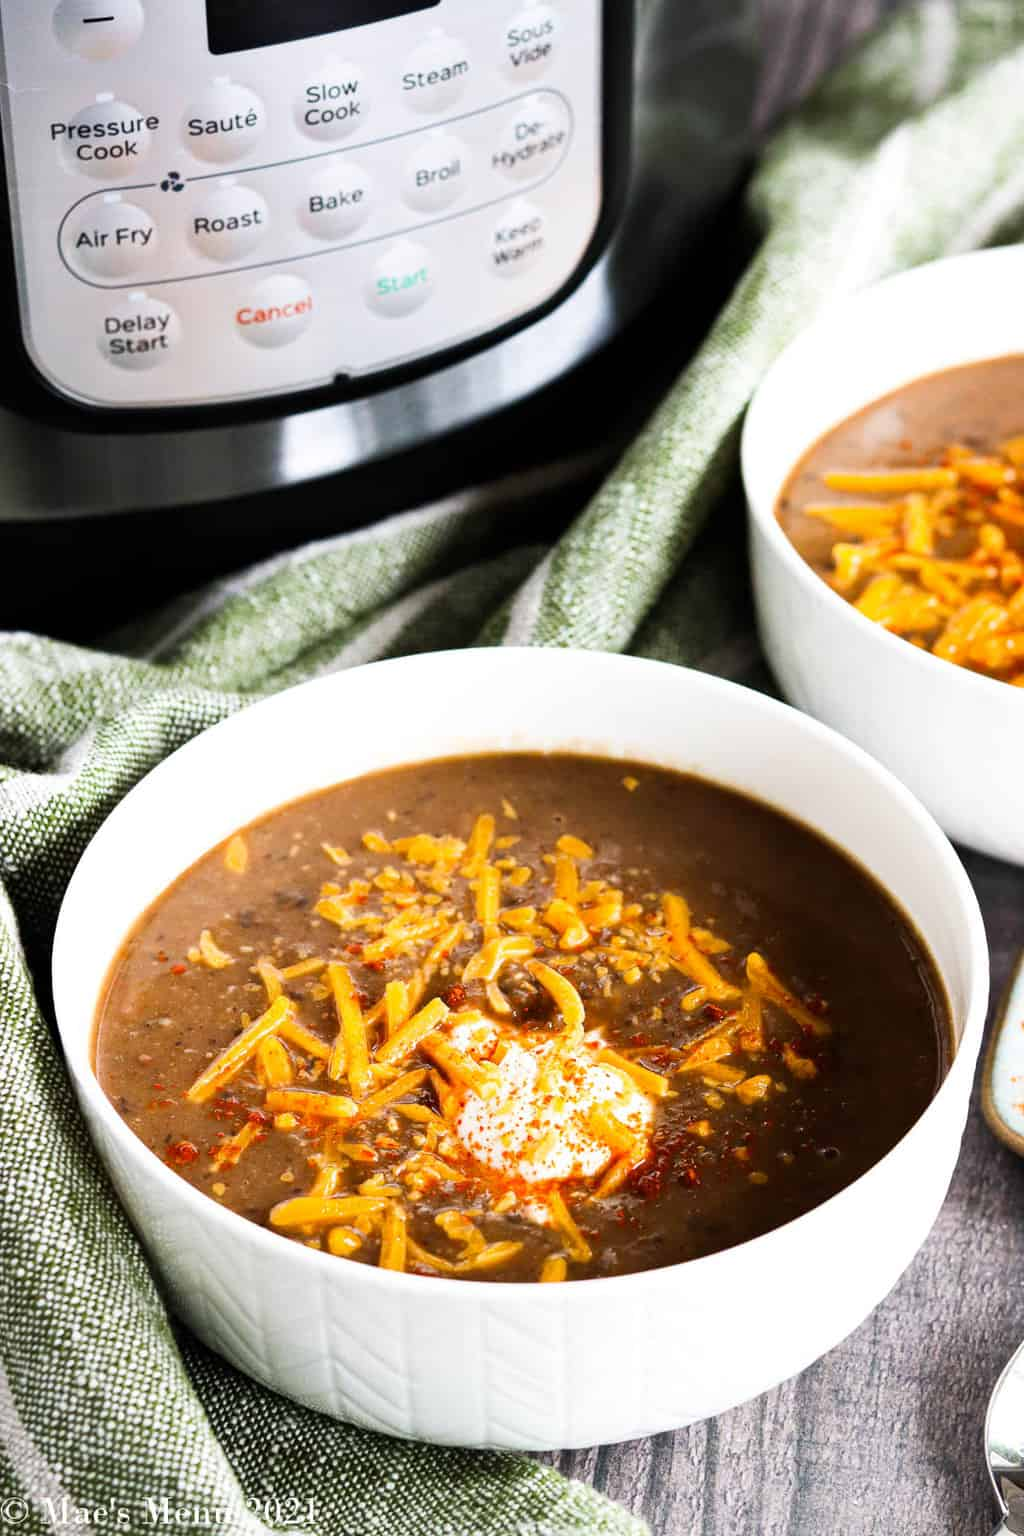 Two bowls of Instant Pot bean soup in front of a pressure cooker